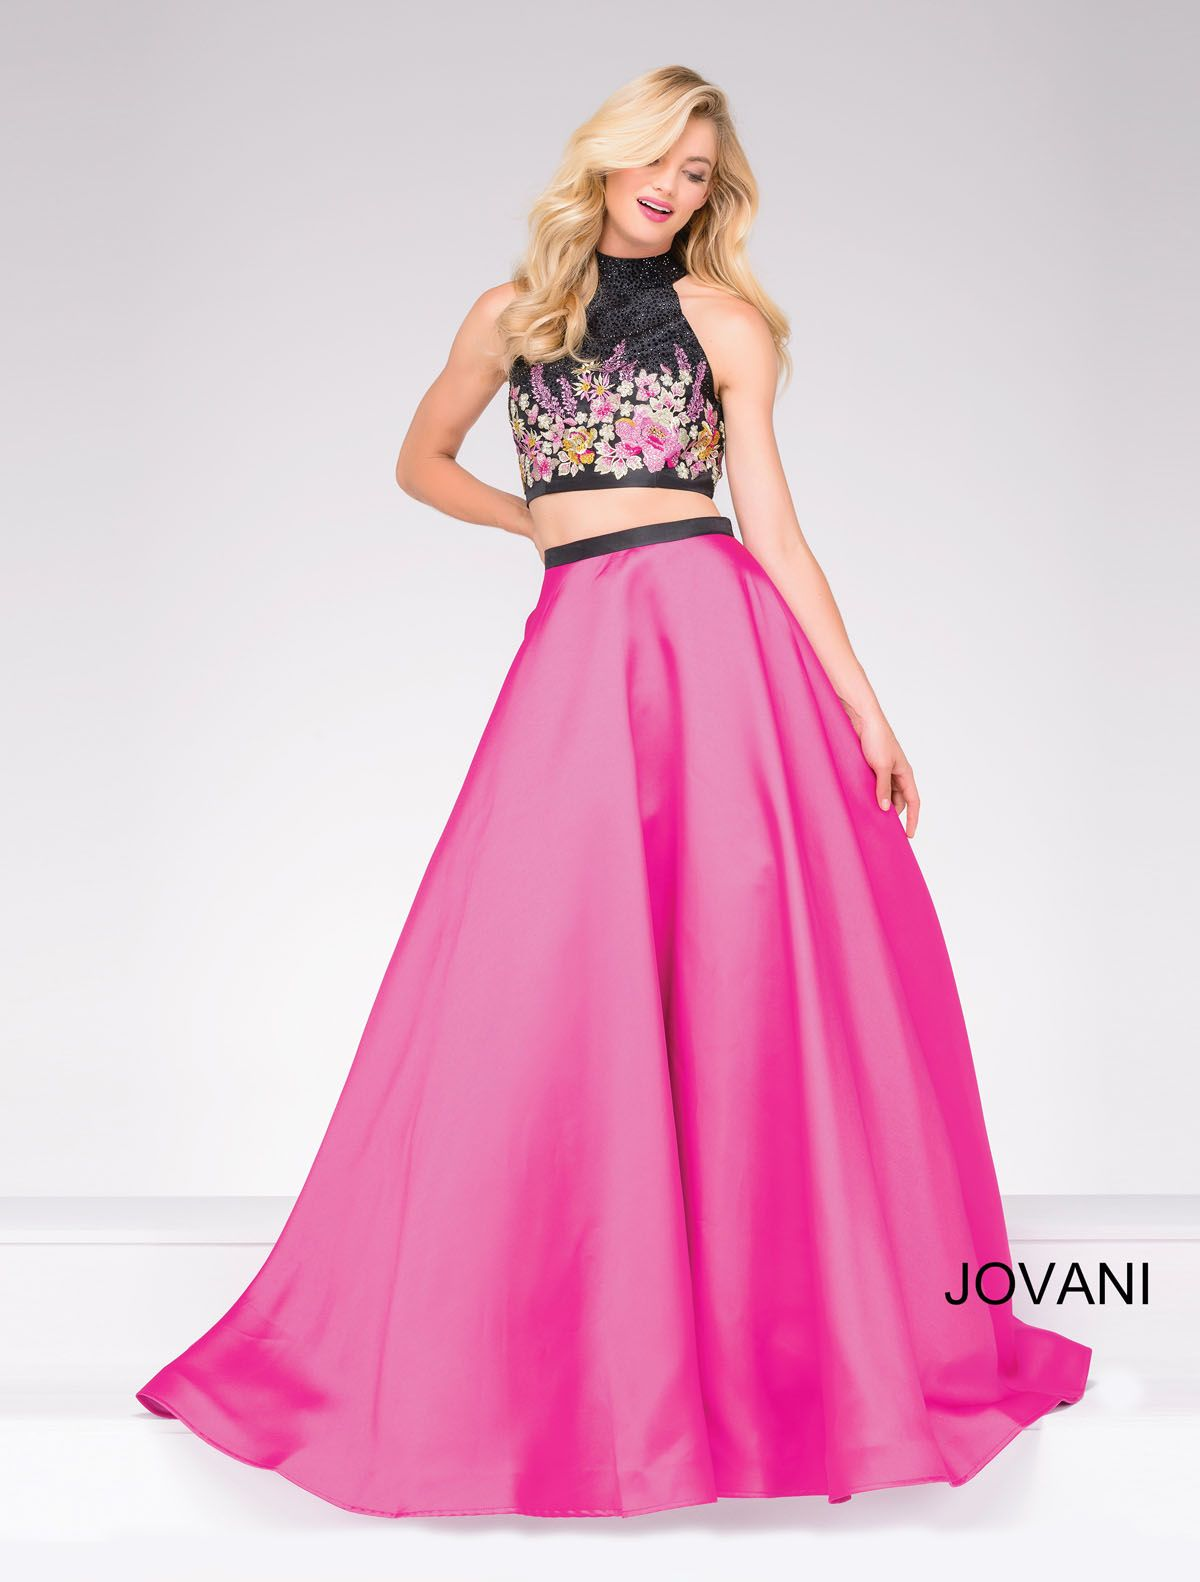 Jovani jovani prom dresses pinterest prom prom dress